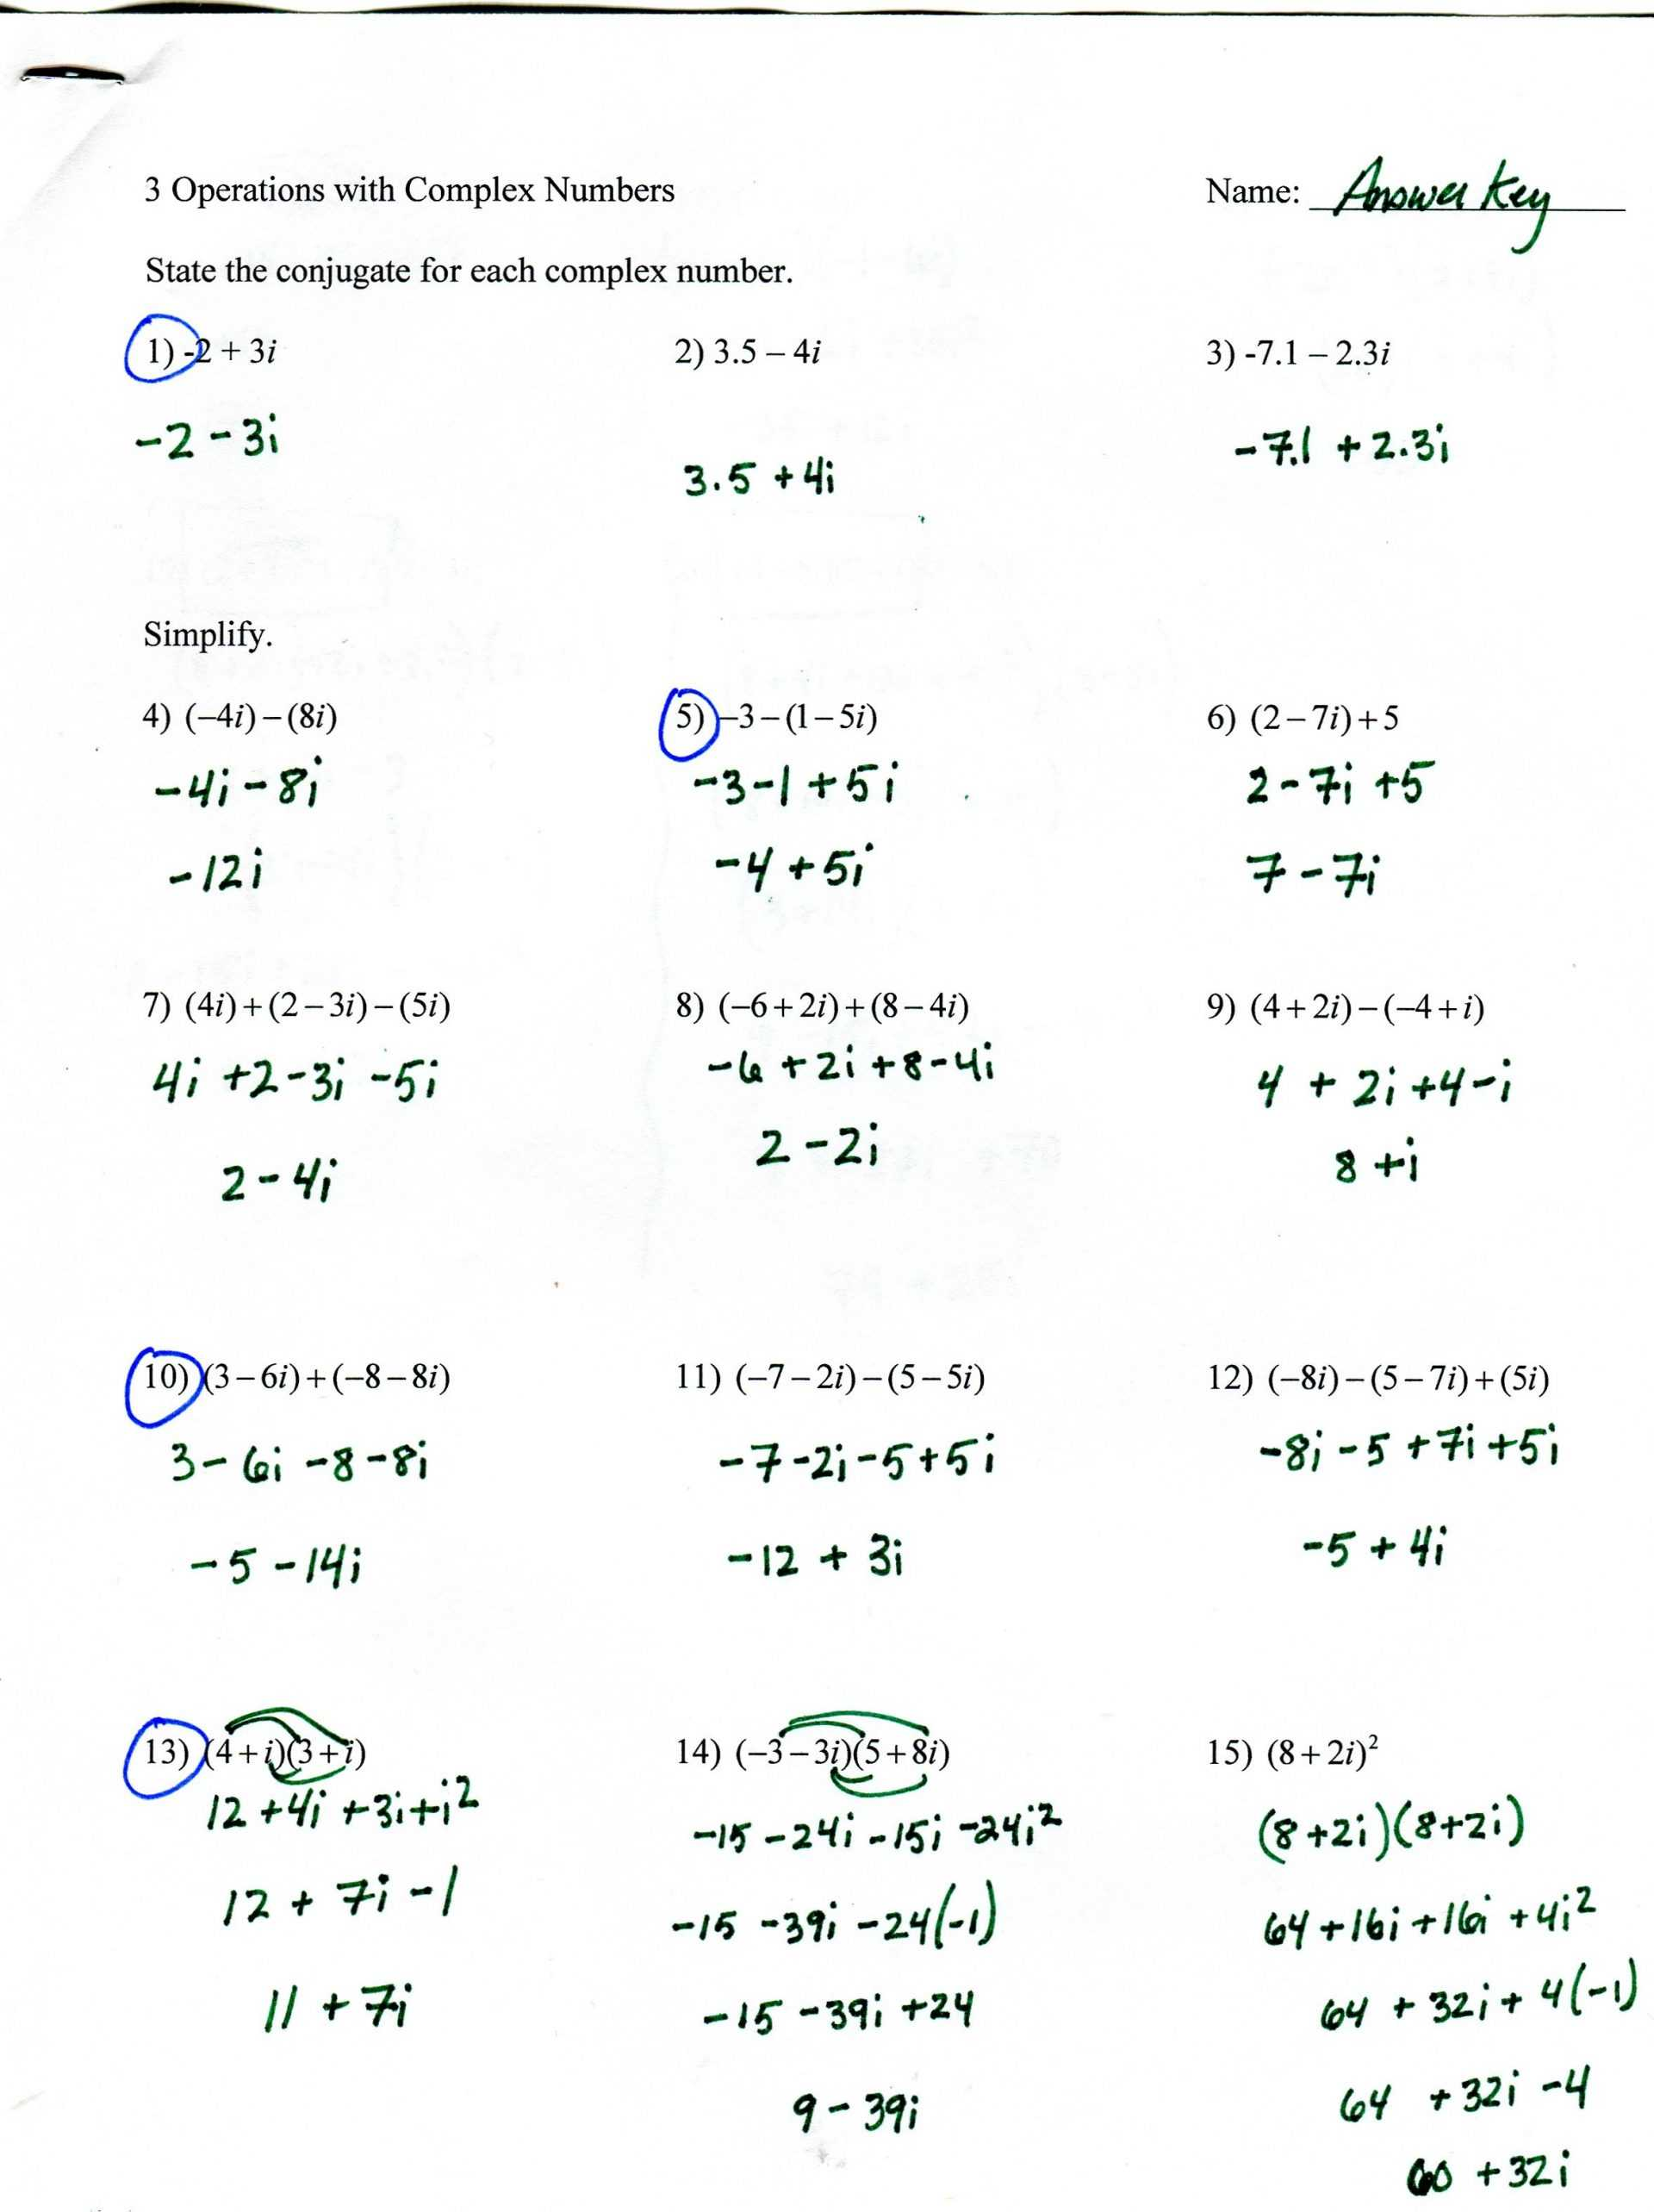 Graphing Exponential Functions Worksheet Answers Along with Exponential Function Practice Worksheets Gallery Worksheet for